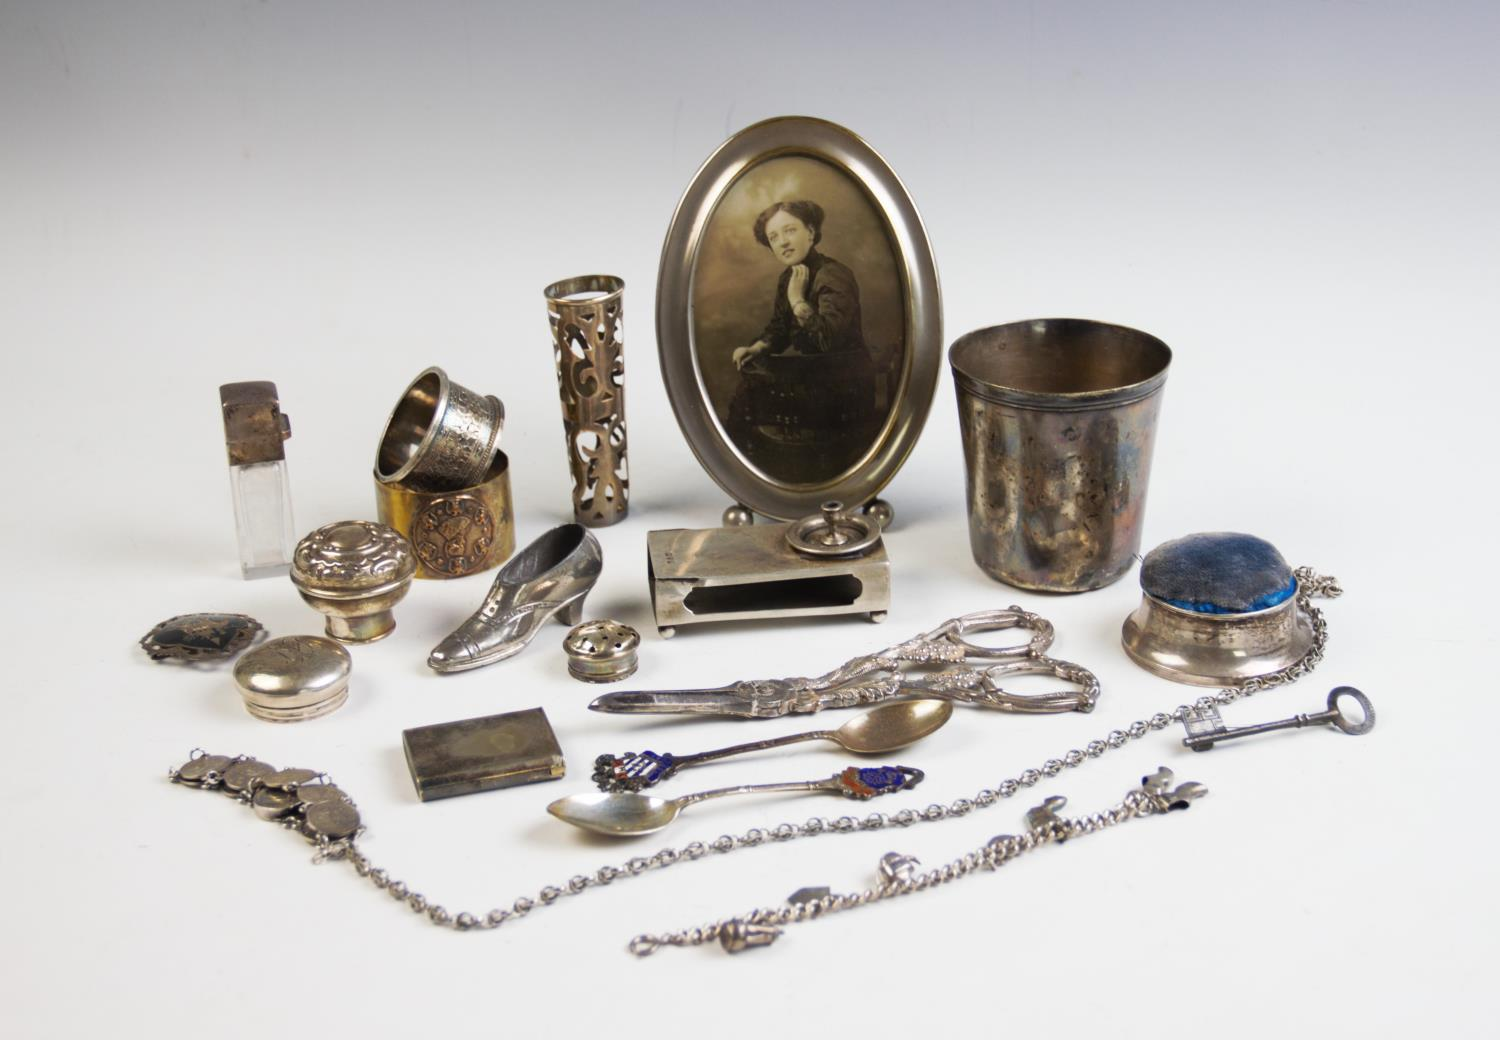 Lot 5 - A selection of silver and silver coloured wares, to include; a Chester silver match sleeve, a